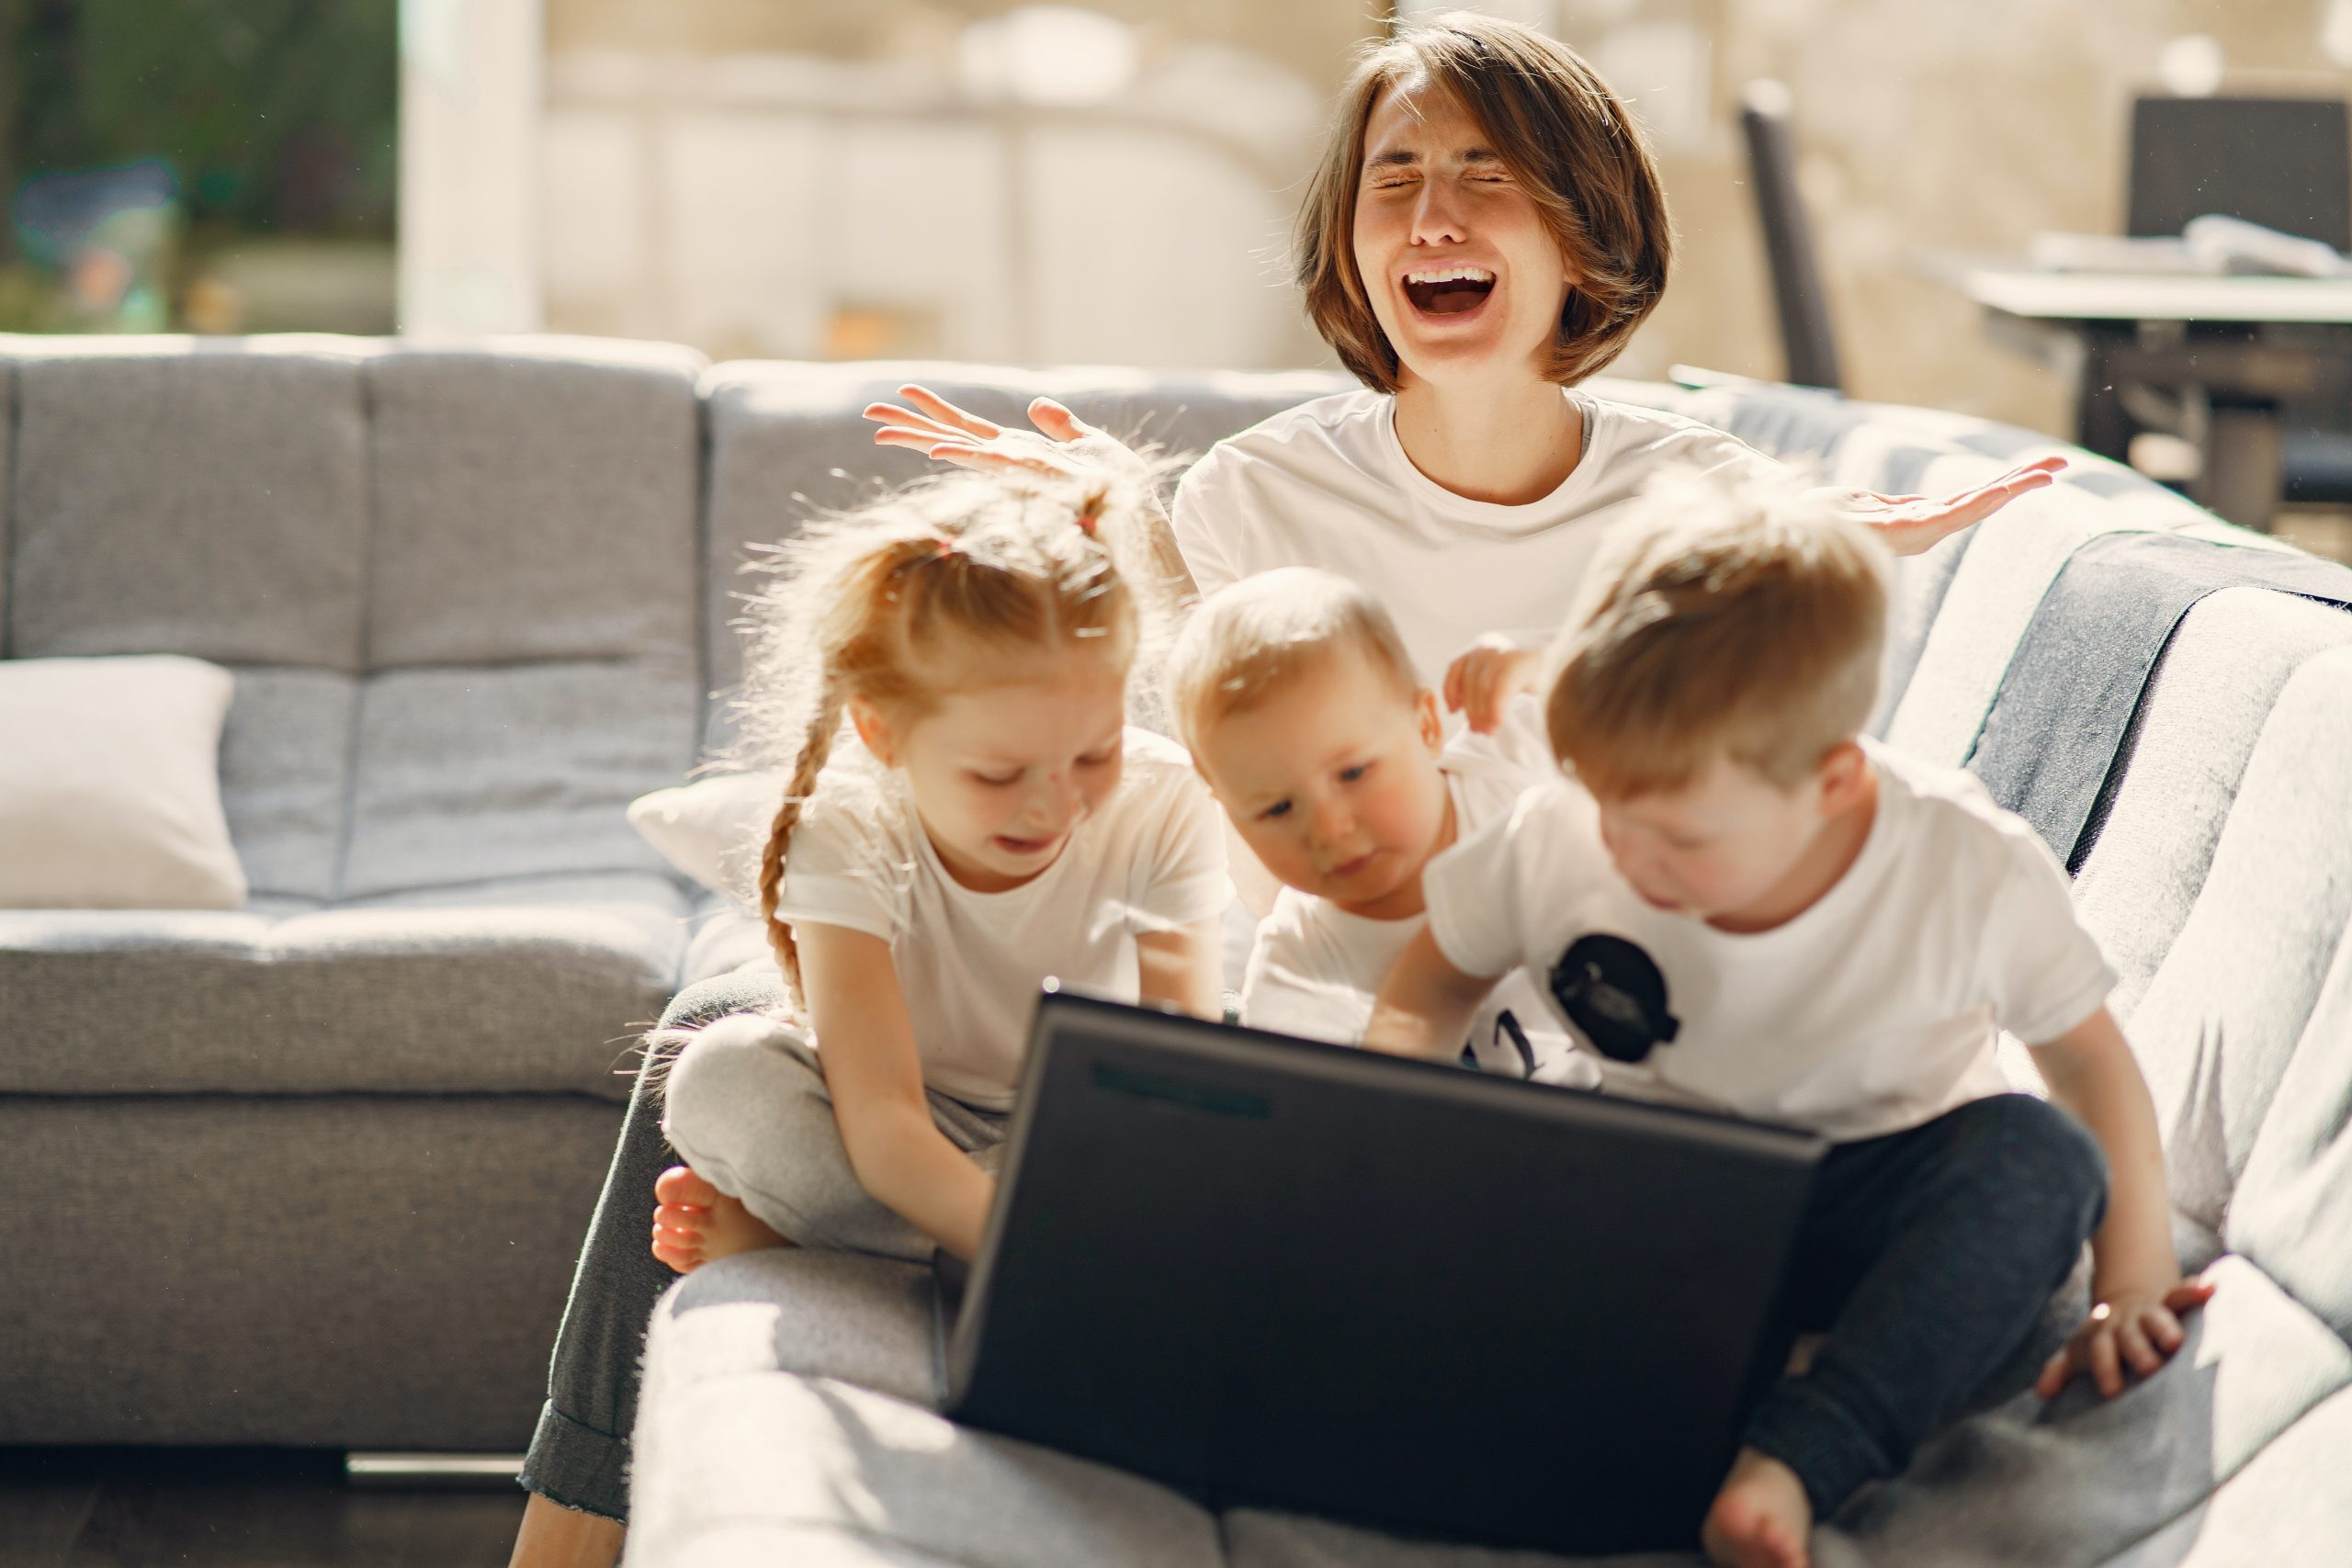 Online Learning: Dealing With the Tasks and Emotions of Schooling at Home